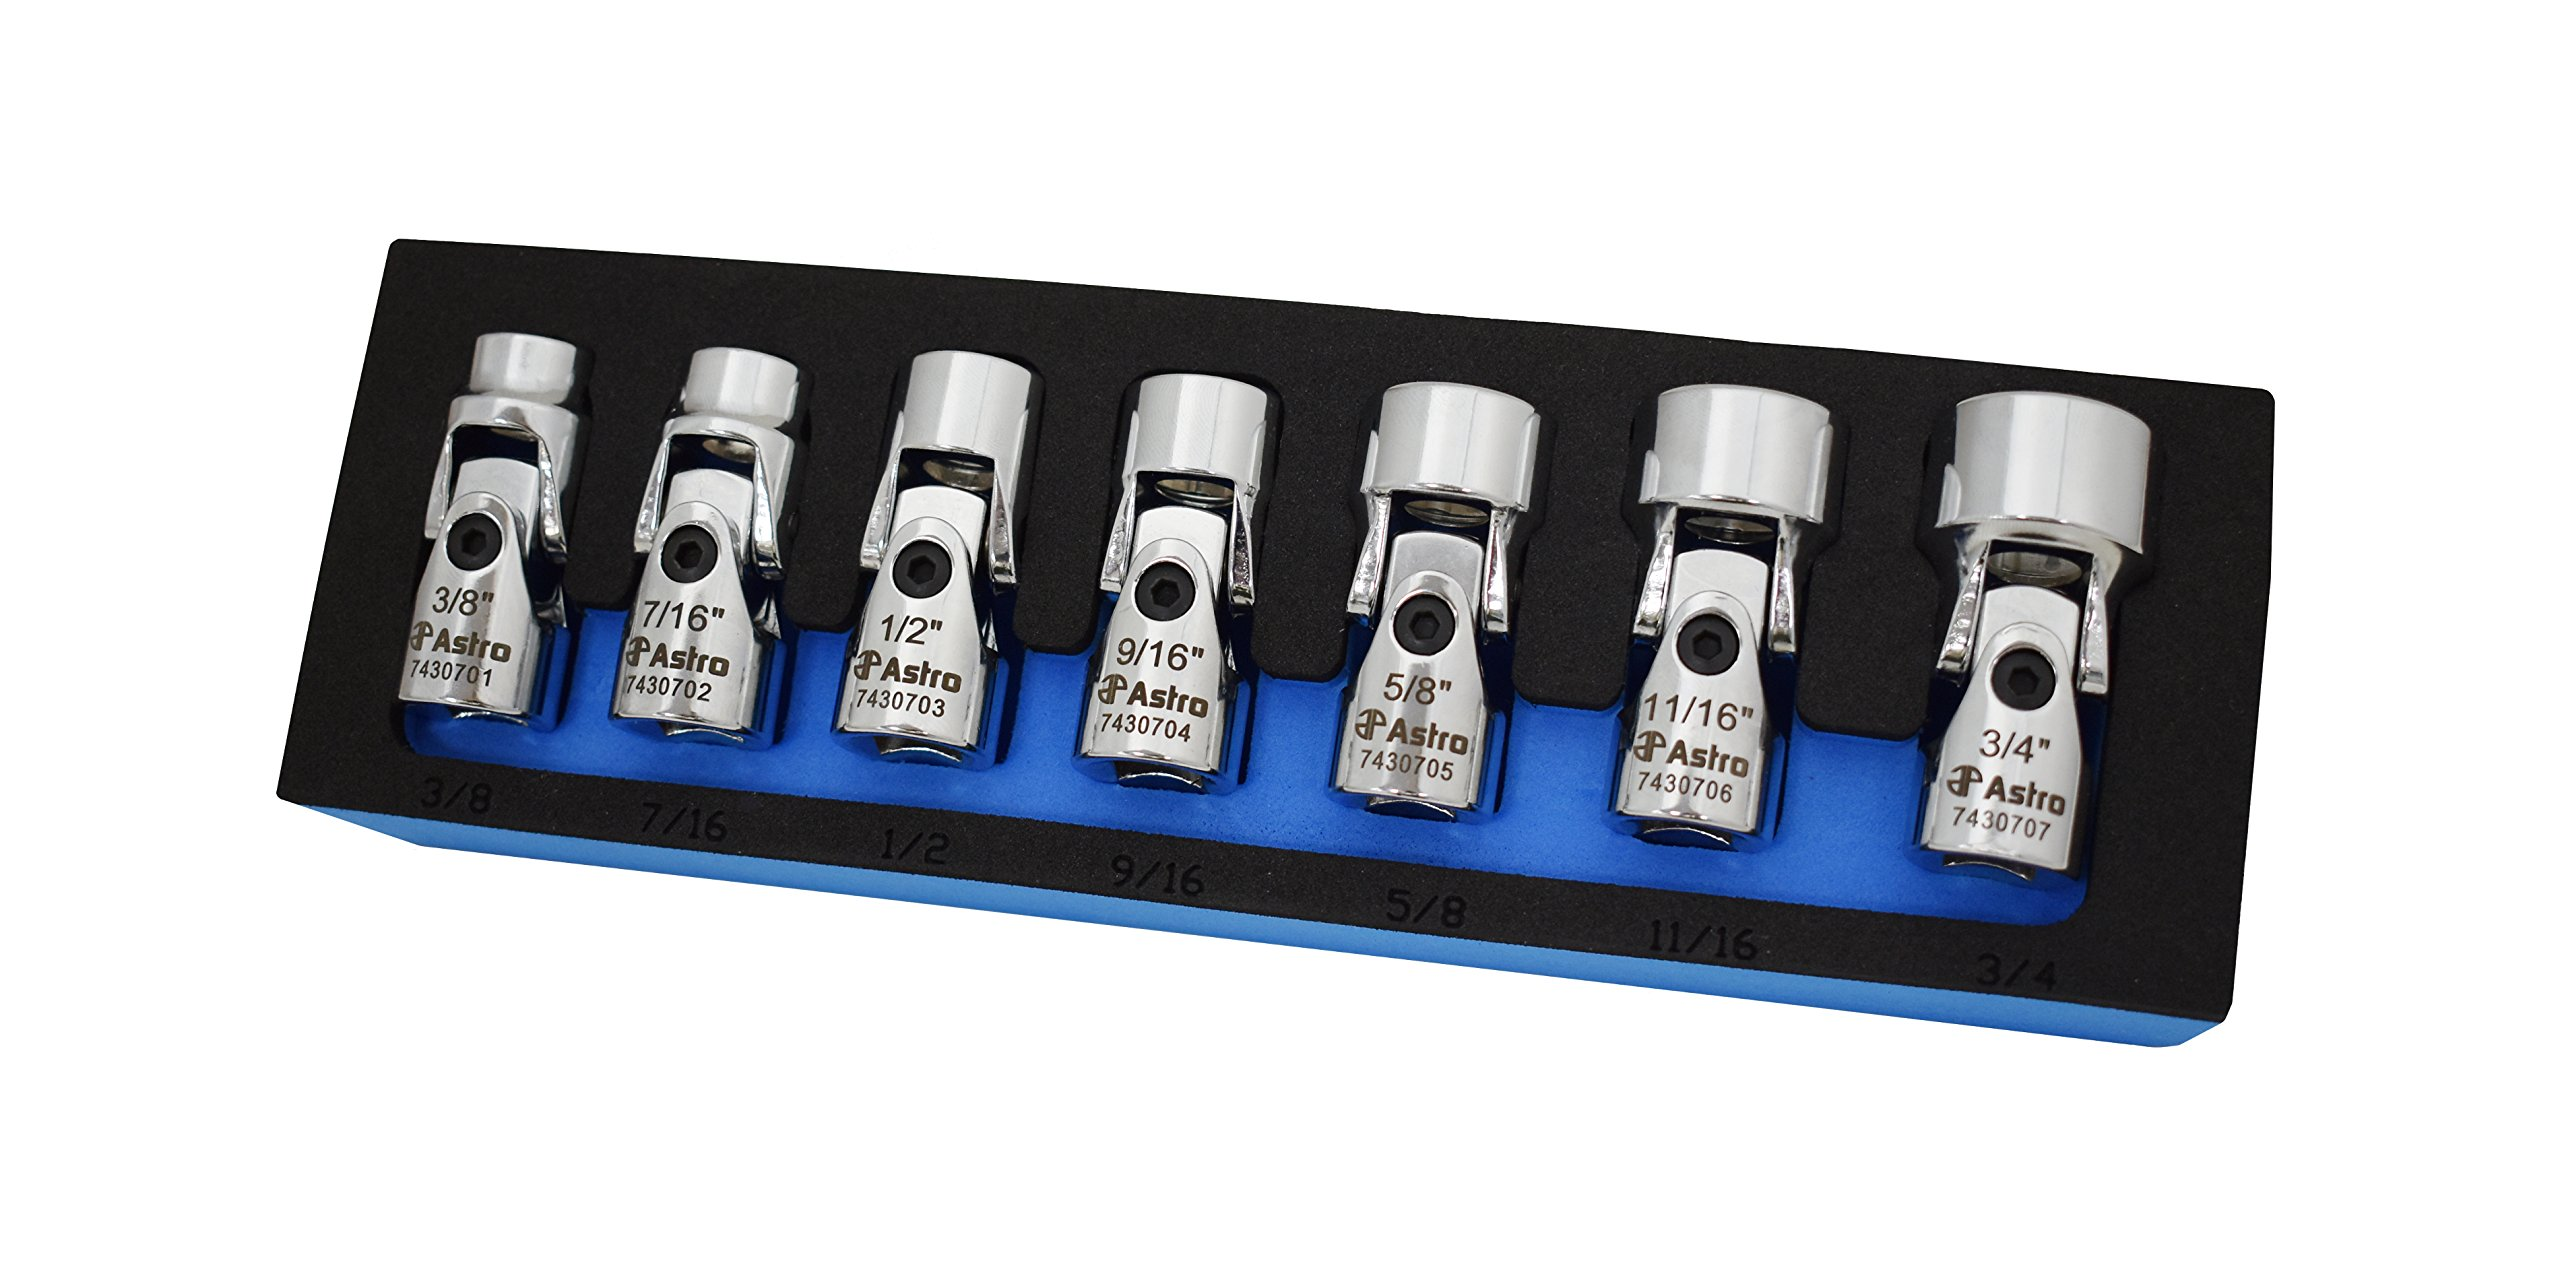 Astro Pnematic - 7Pc 3/8'' Drive Flex Socket Set - 6 Pt. - SAE (model: 74307) by Astro Pneumatic Tool